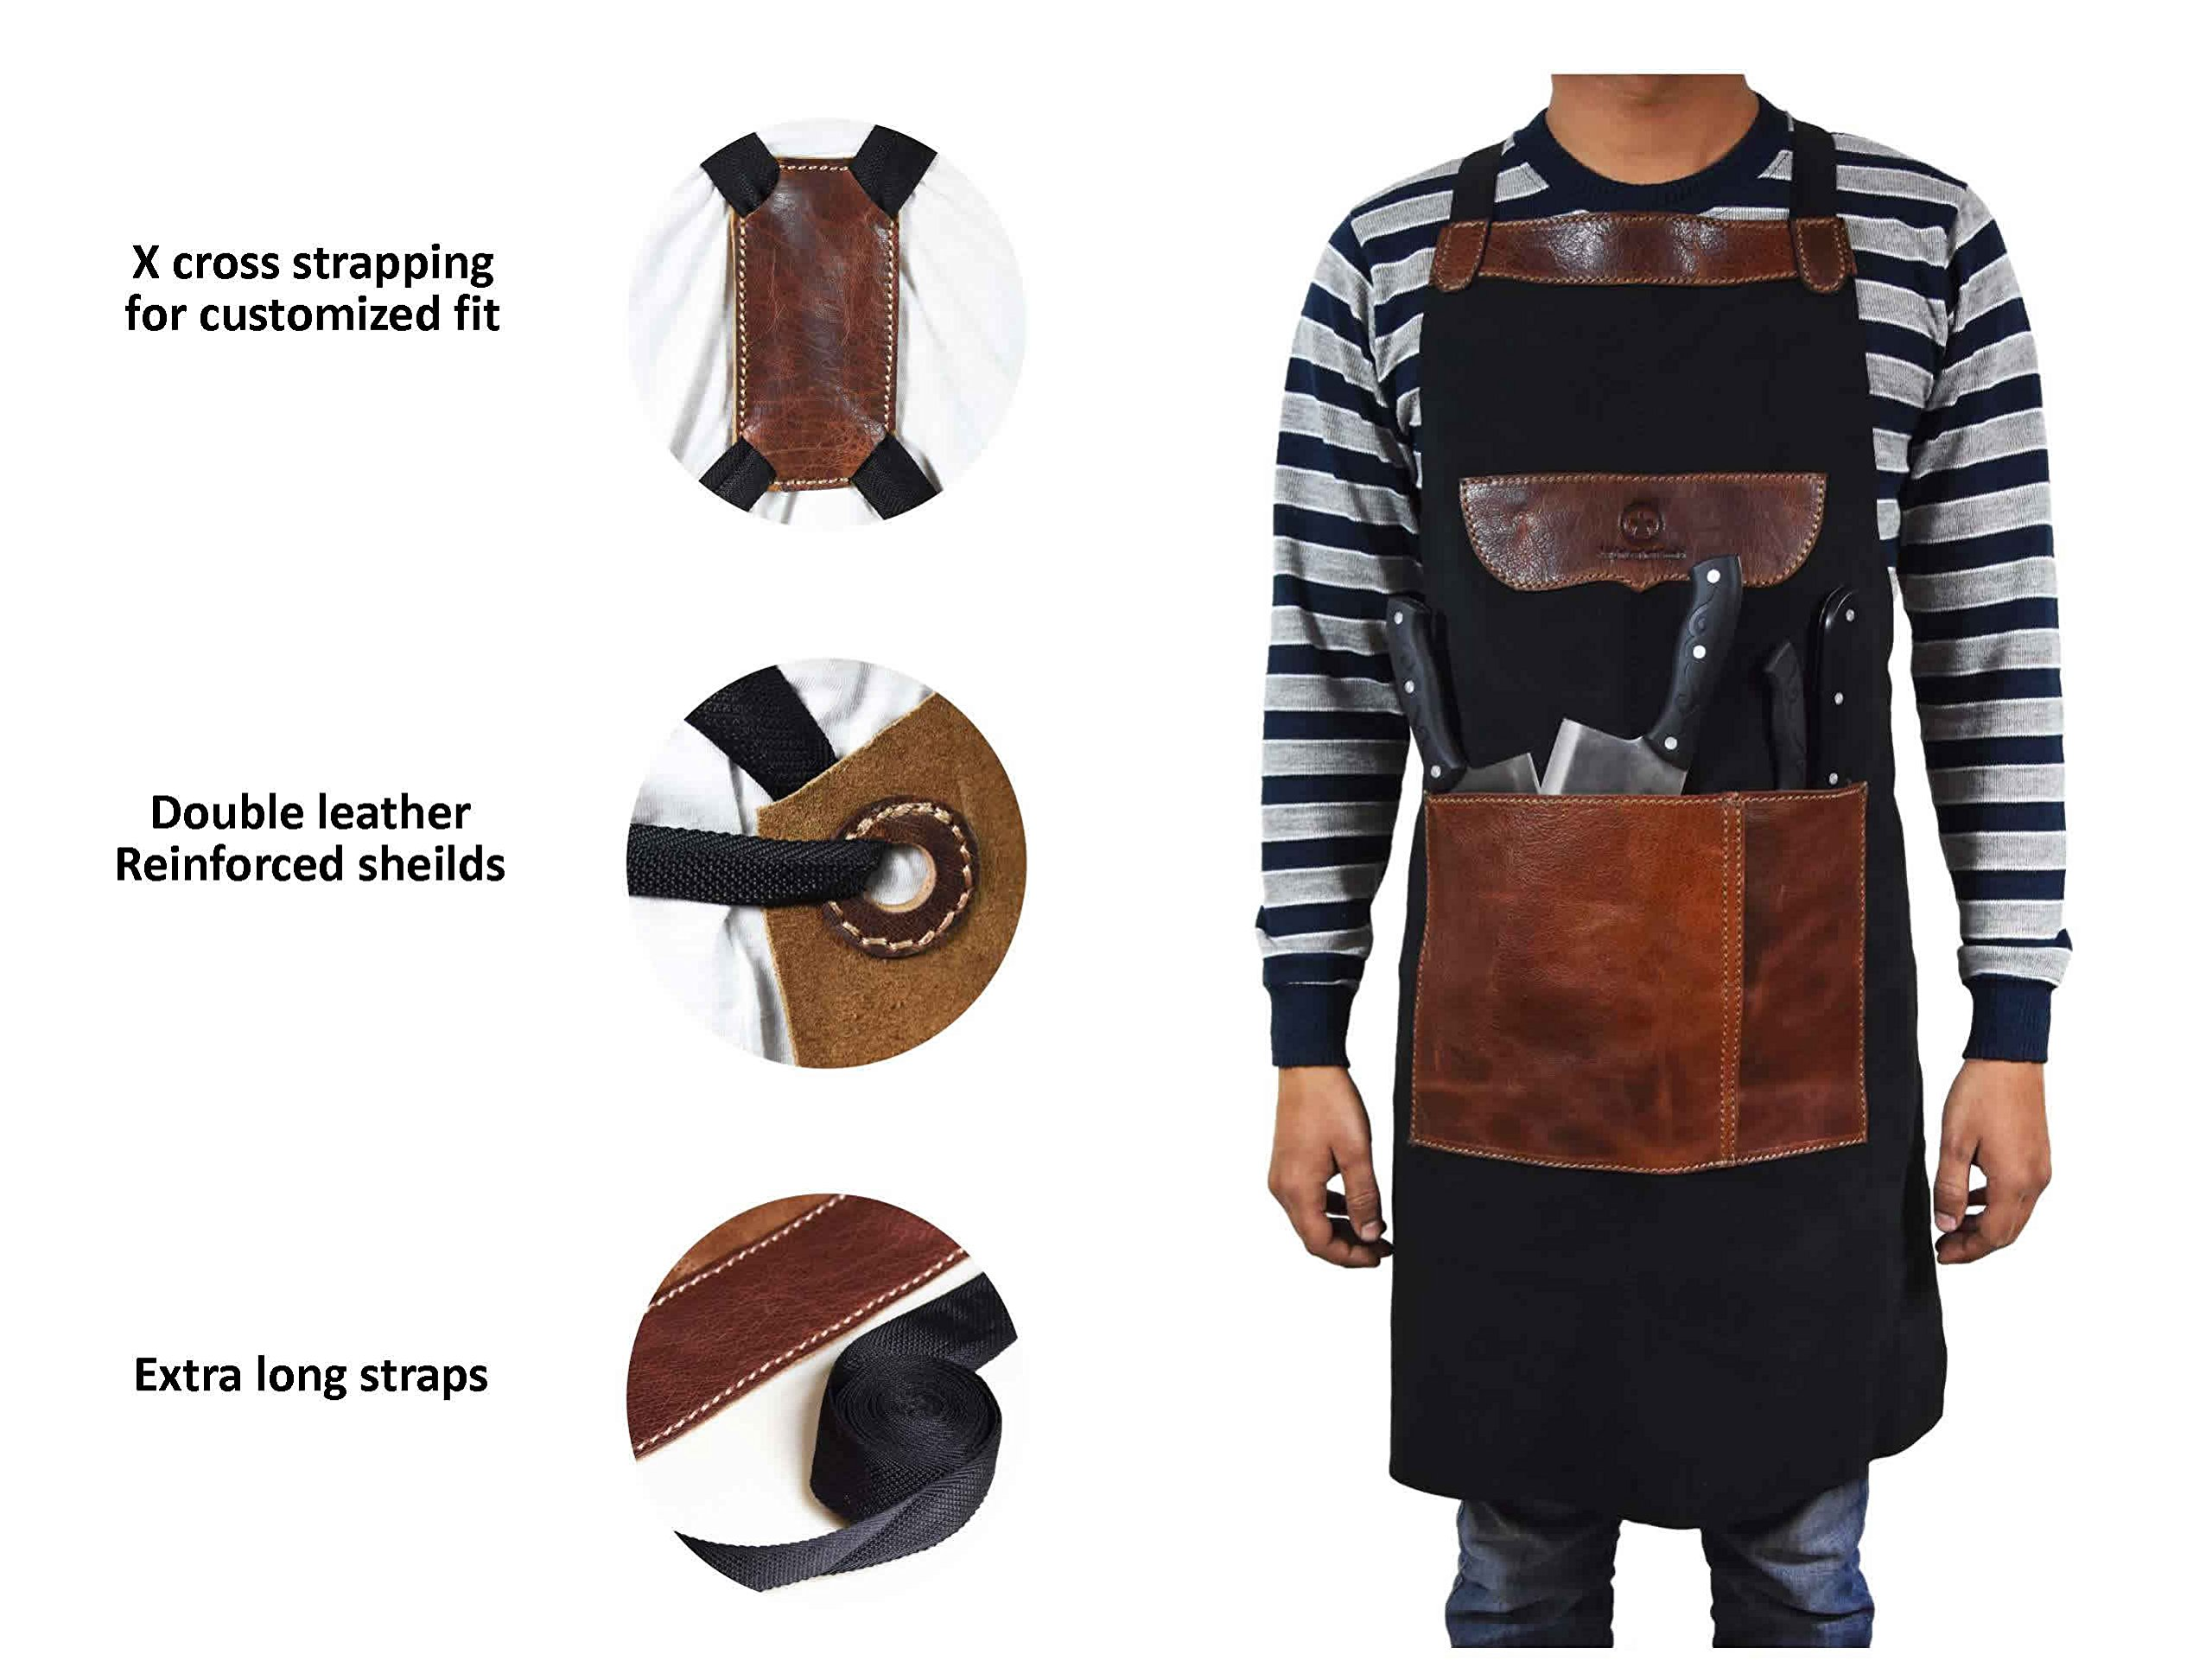 Aaron Leather One Size Fits All Leather Utility Apron | Adjustable Cross-Back Straps | Multi-Use Shop Apron With Tool Pockets By (Black)